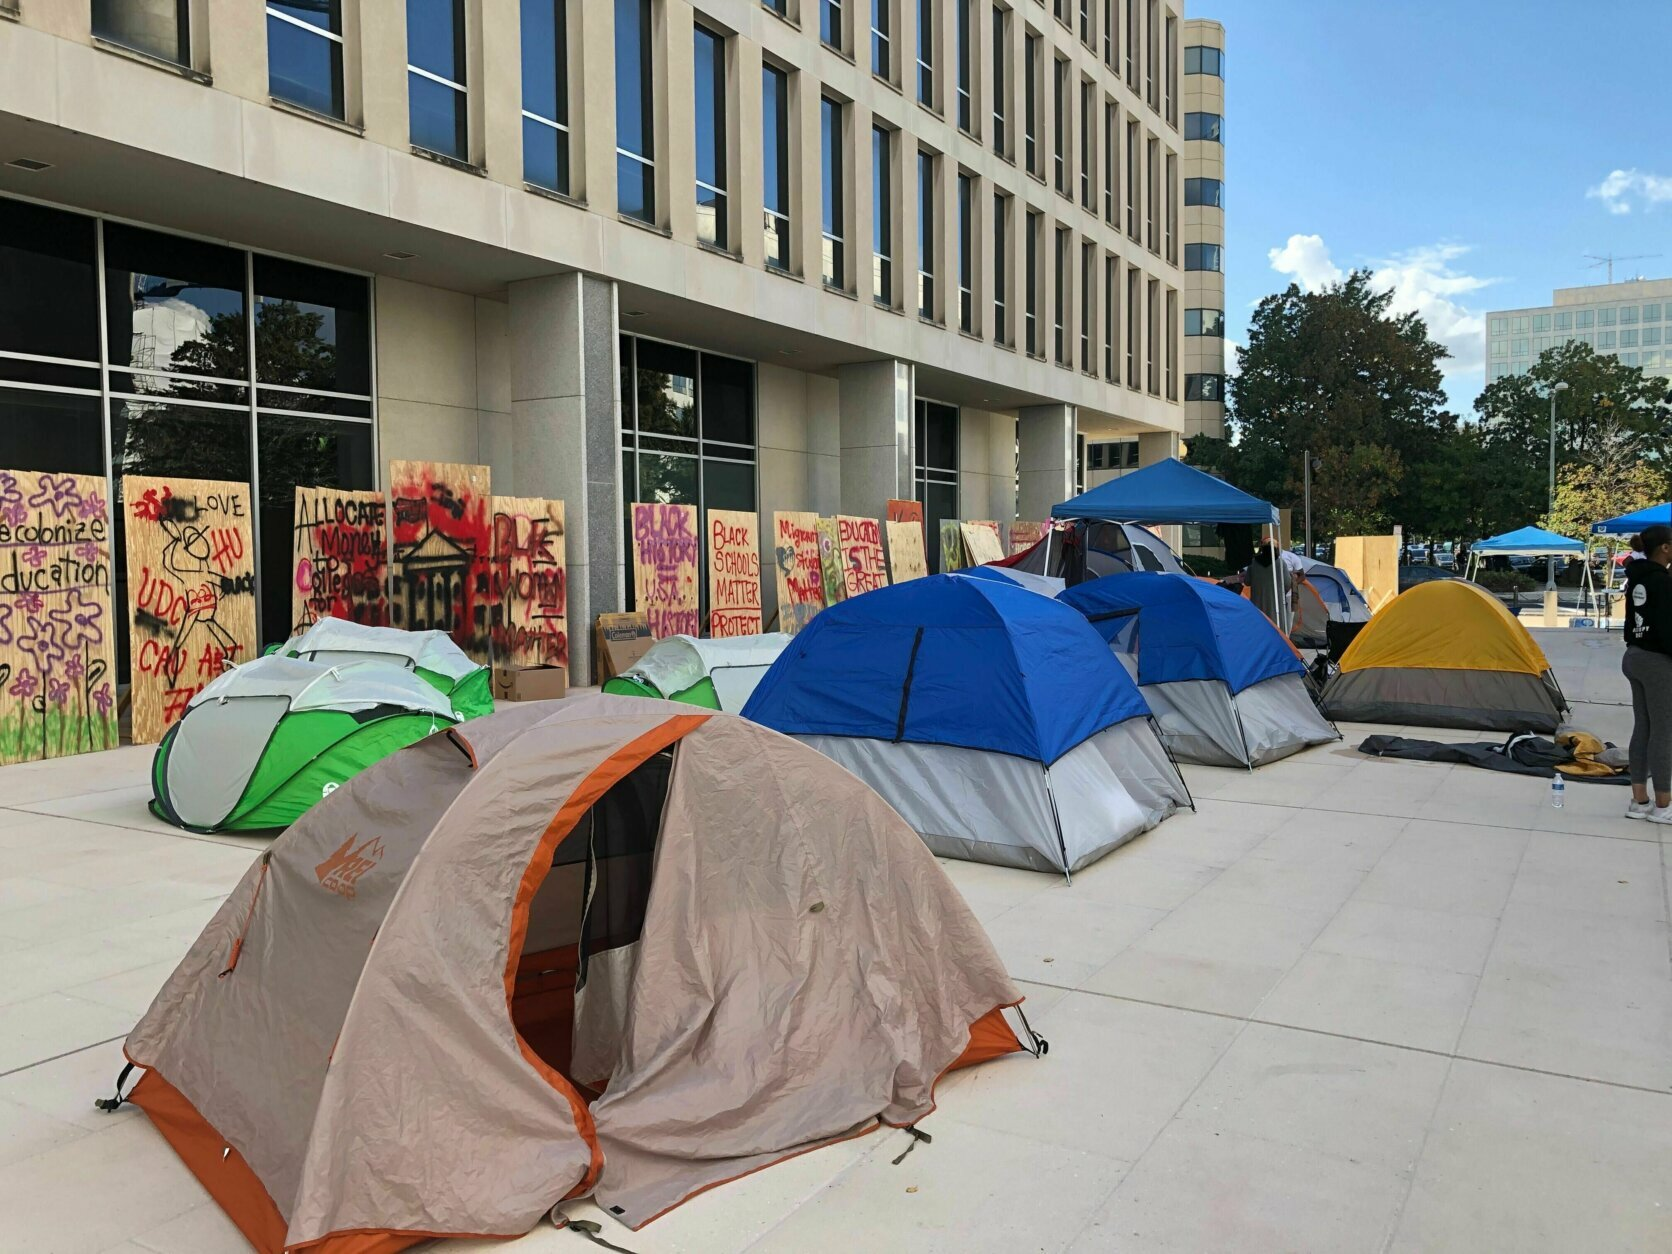 About 15 tents have been pitched outside the Department of Education building in D.C., where protestors are demanding changes to make our education system more equitable.